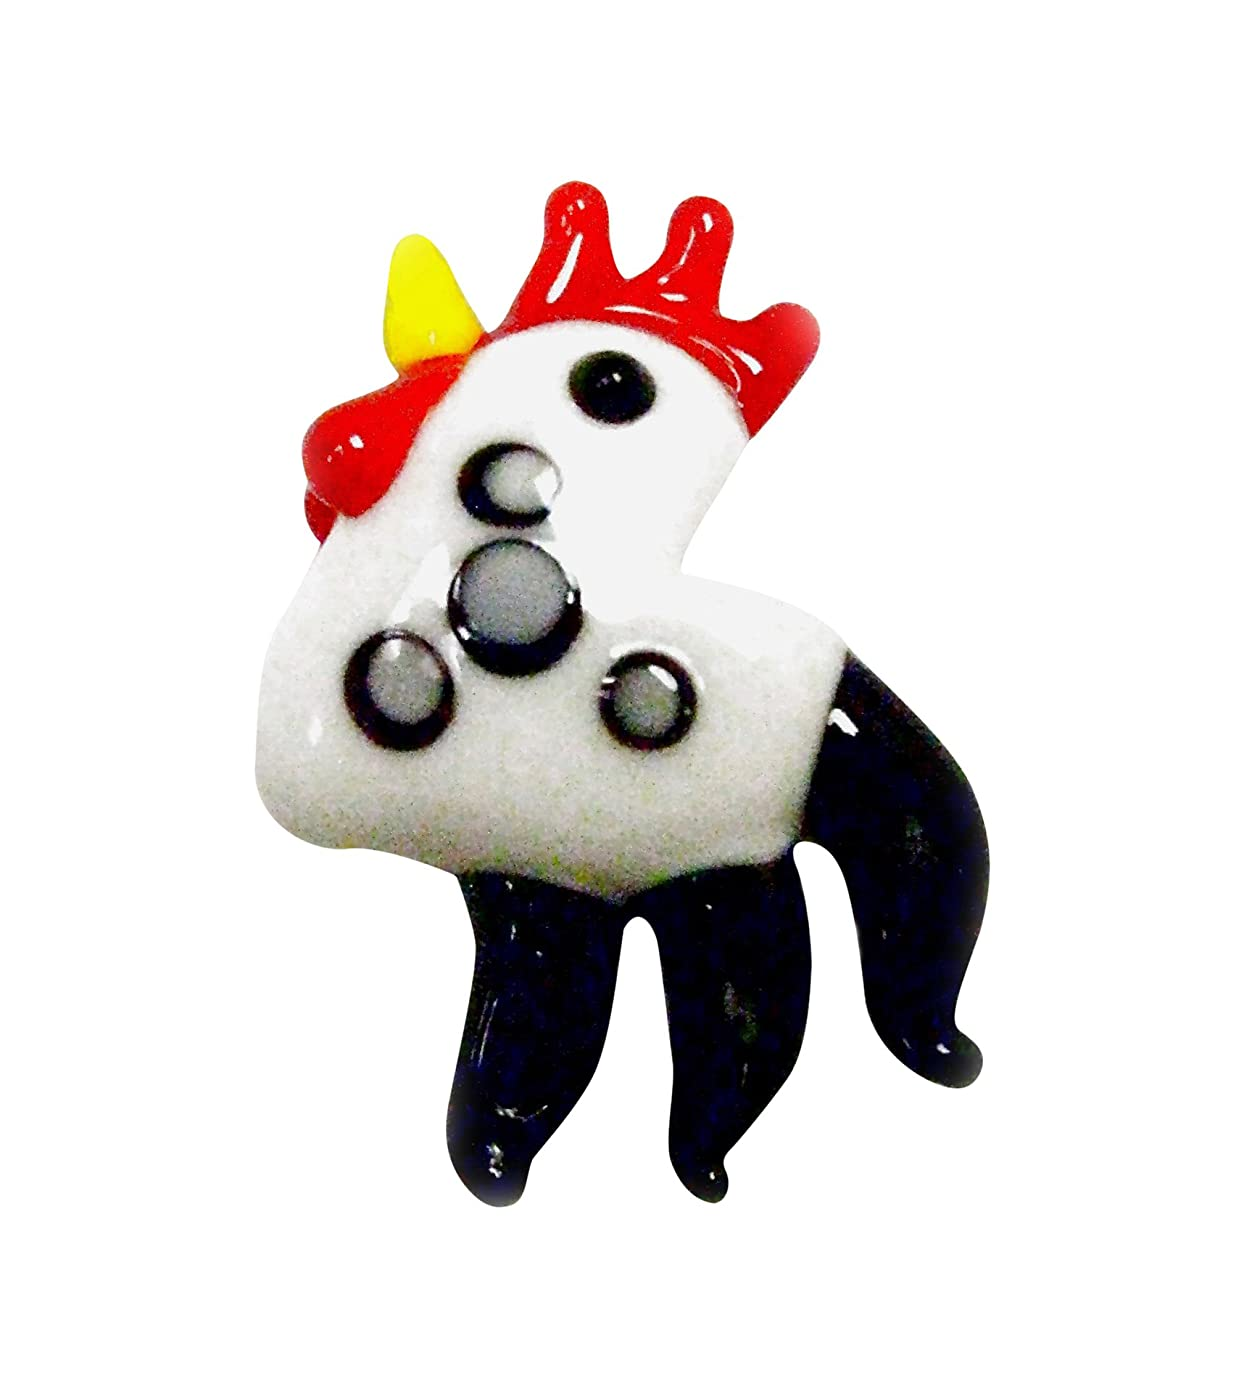 Linpeng Lampwork Glass Novelty Bead, 40 x 30 x 12mm, White Rooster